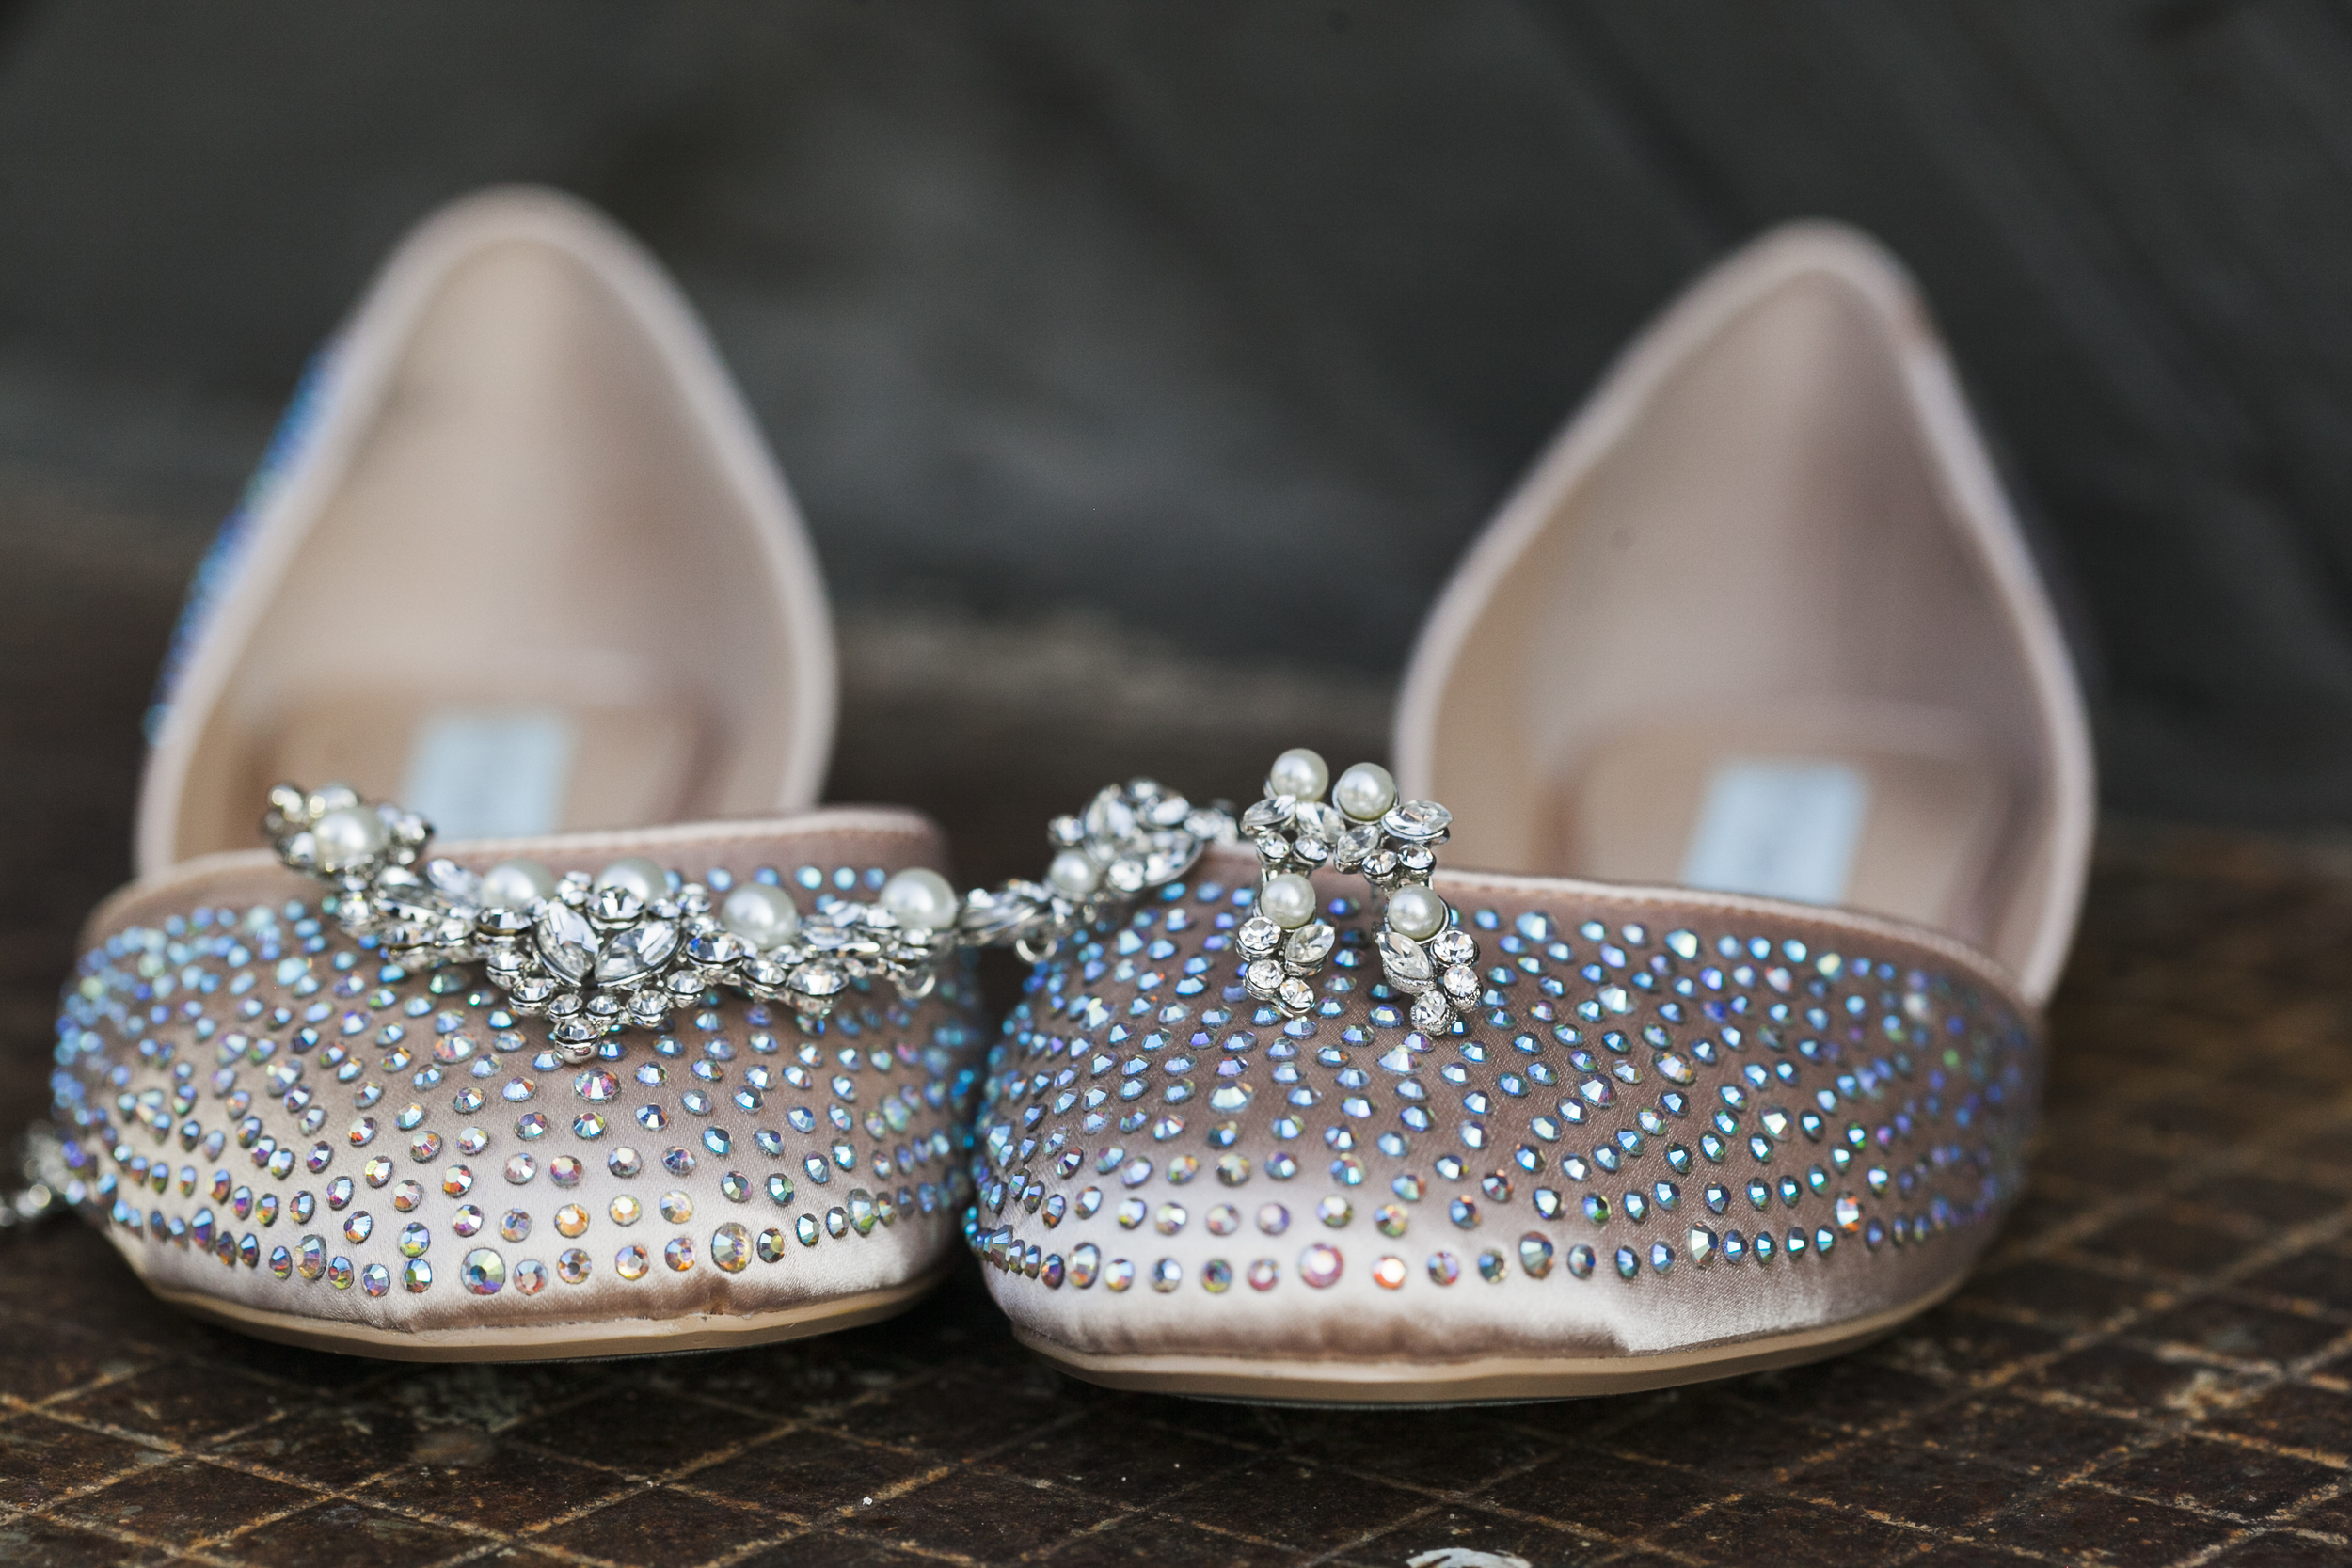 I'm in love with her shoes! So unique!